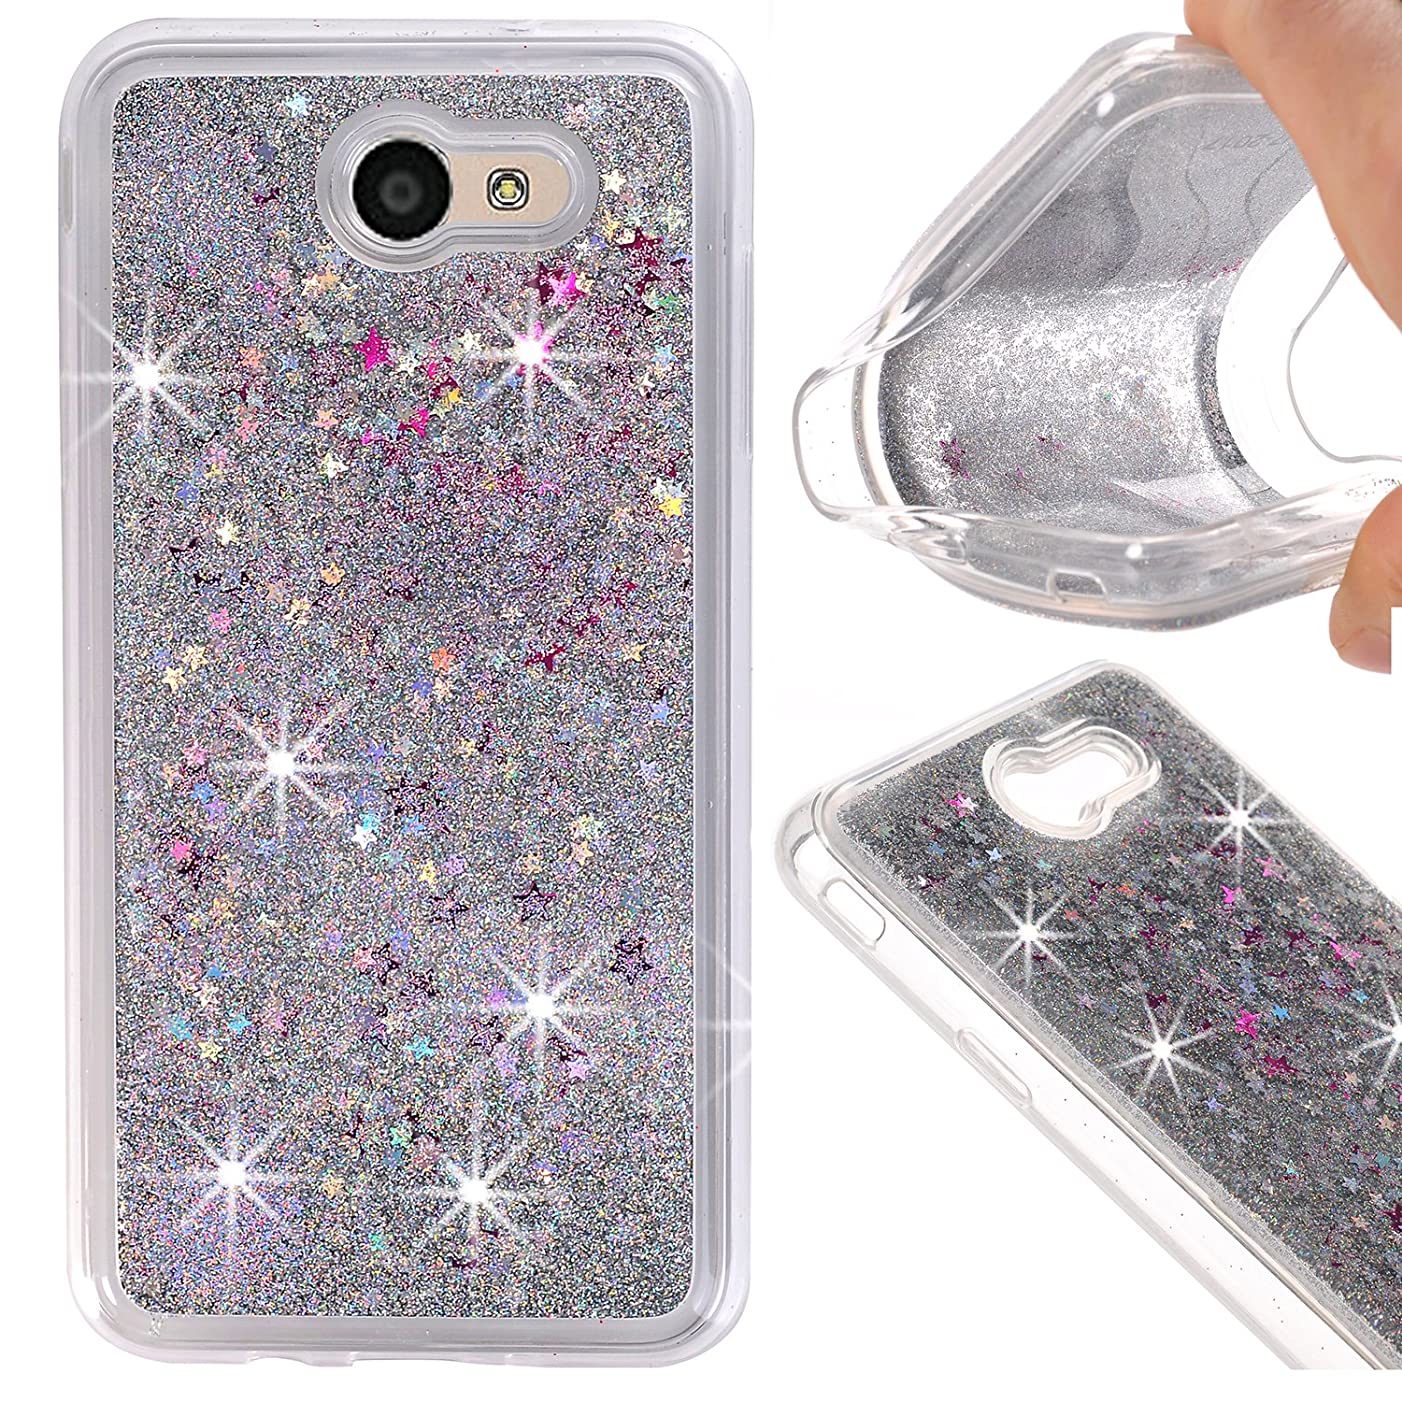 Galaxy J7 Case ,J7 Glitter Case,Binguowang Quicksand Design Flowing Liquid Floating Luxury bling Glitter Sparkle Stars Clear Hard Case Cover For Samsung Galaxy J7 2017 (Silver)